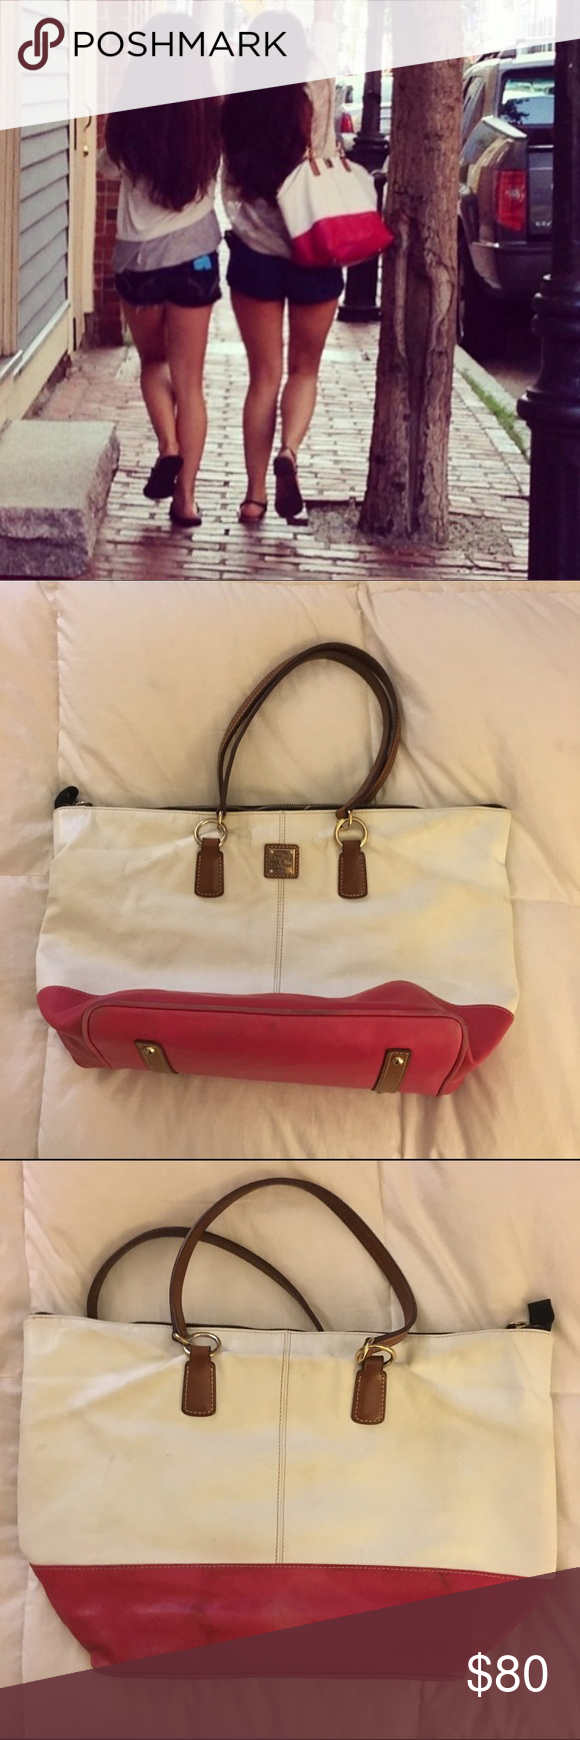 Designer Dooney Leather Tote A summer bag for sure. Leather exterior, cloth interior. Well loved and in great condition still. Easy to clean. 100% authentic. Brown leather trim on inner pockets and shoulder straps. I got a ton of compliments last summer! Dooney & Bourke Bags Totes